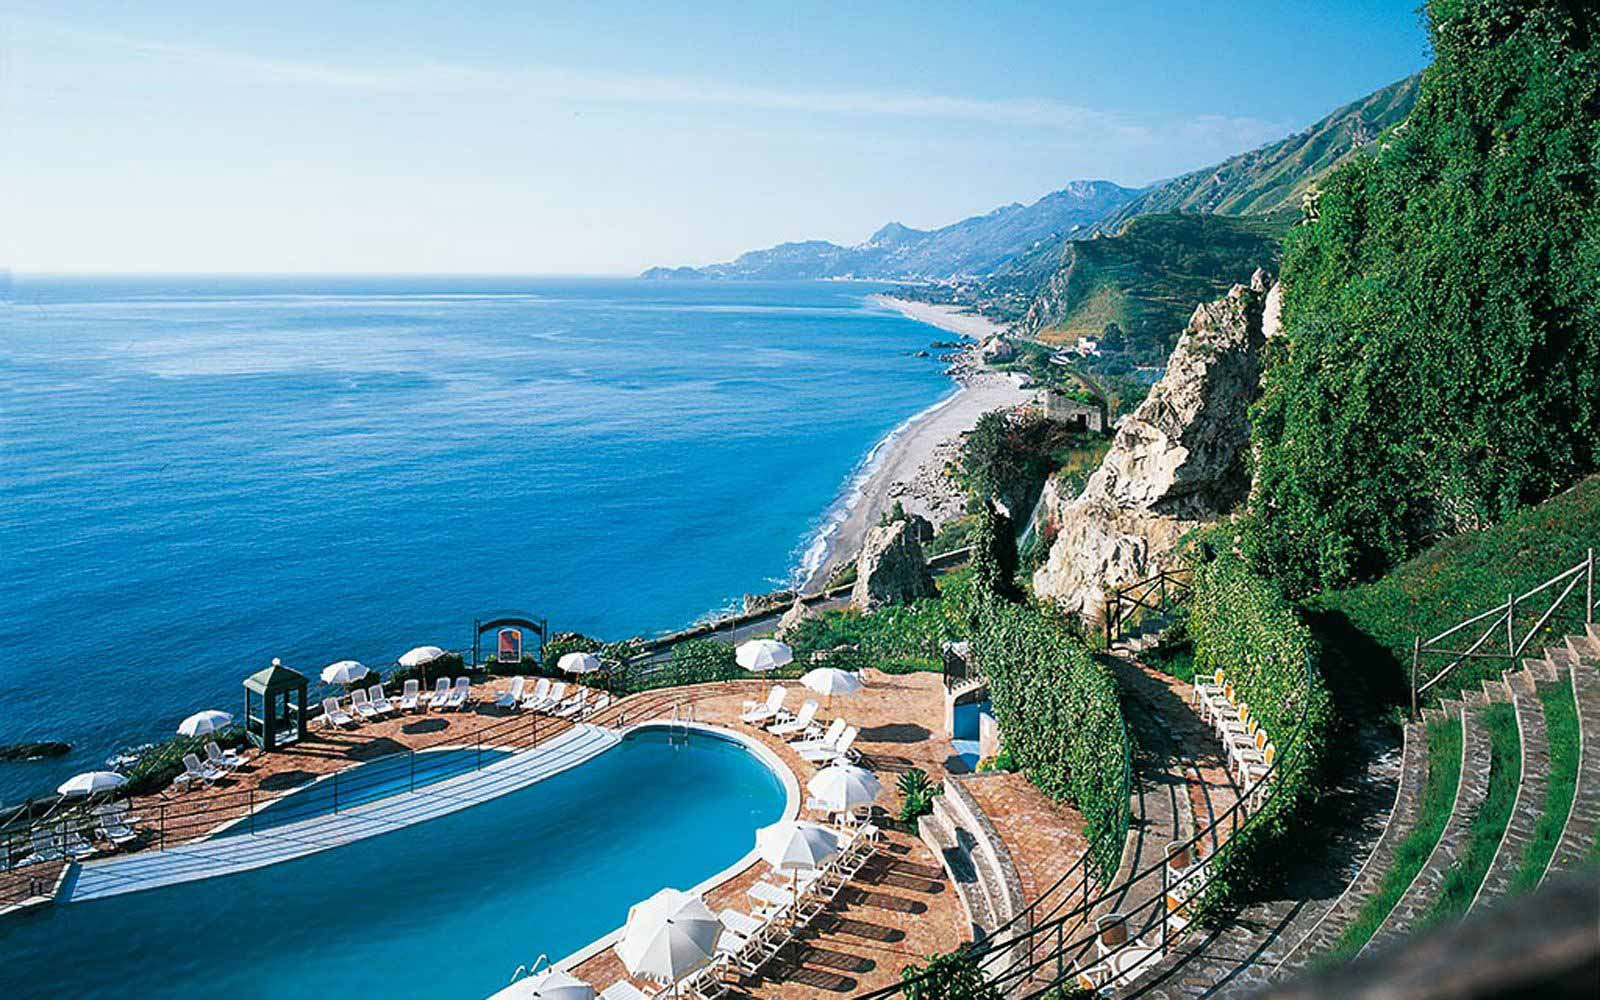 Swimming pool at Hotel Baia Taormina